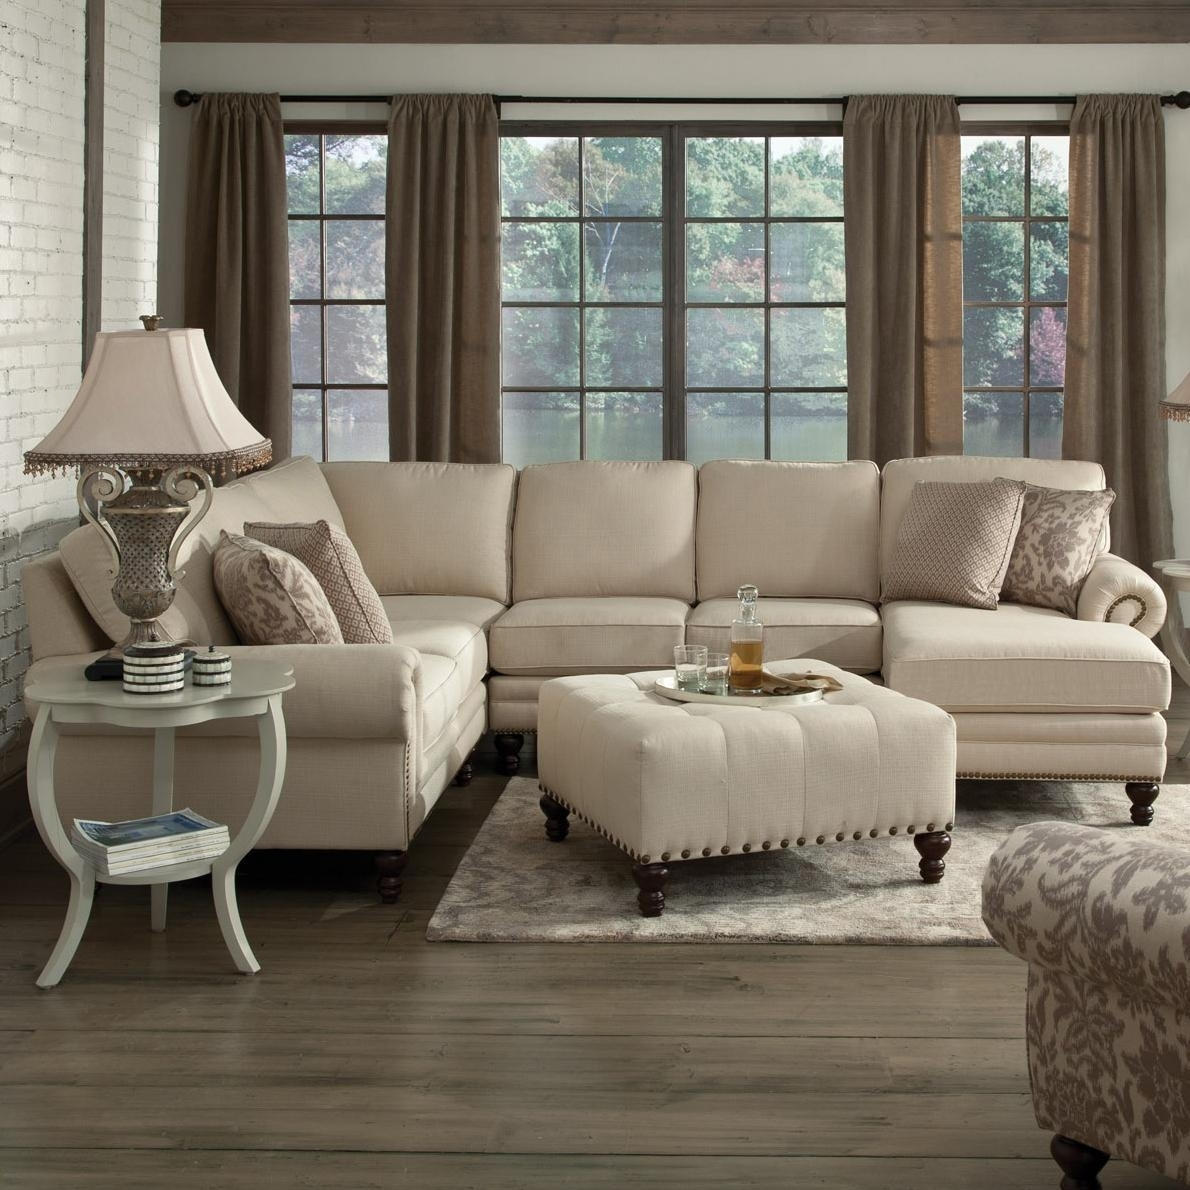 England Amix Six Seat Sectional With Right Chaise | Dunk & Bright in England Sectional Sofas